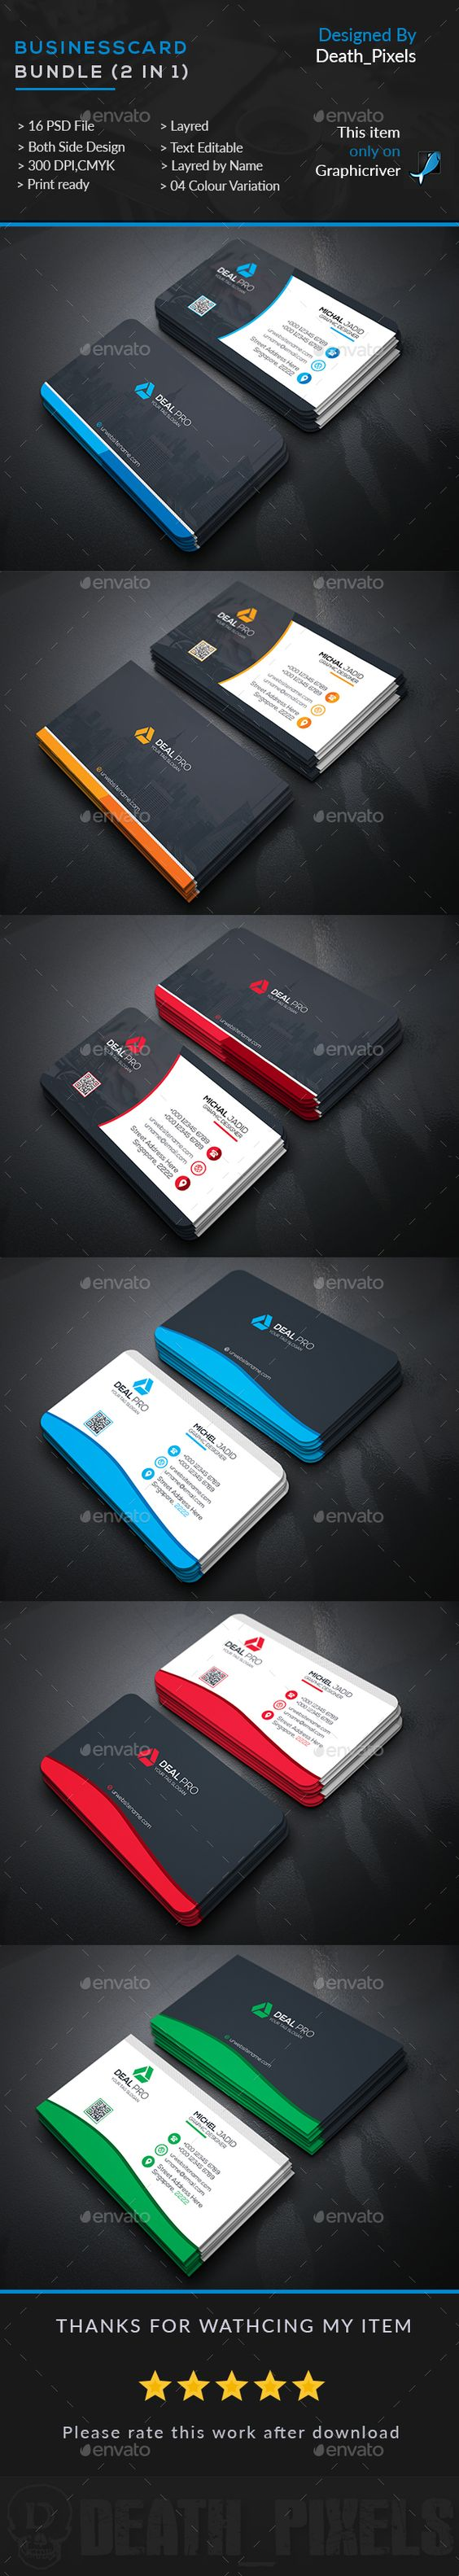 Business Card Templates PSD Bundle (2 in 1)